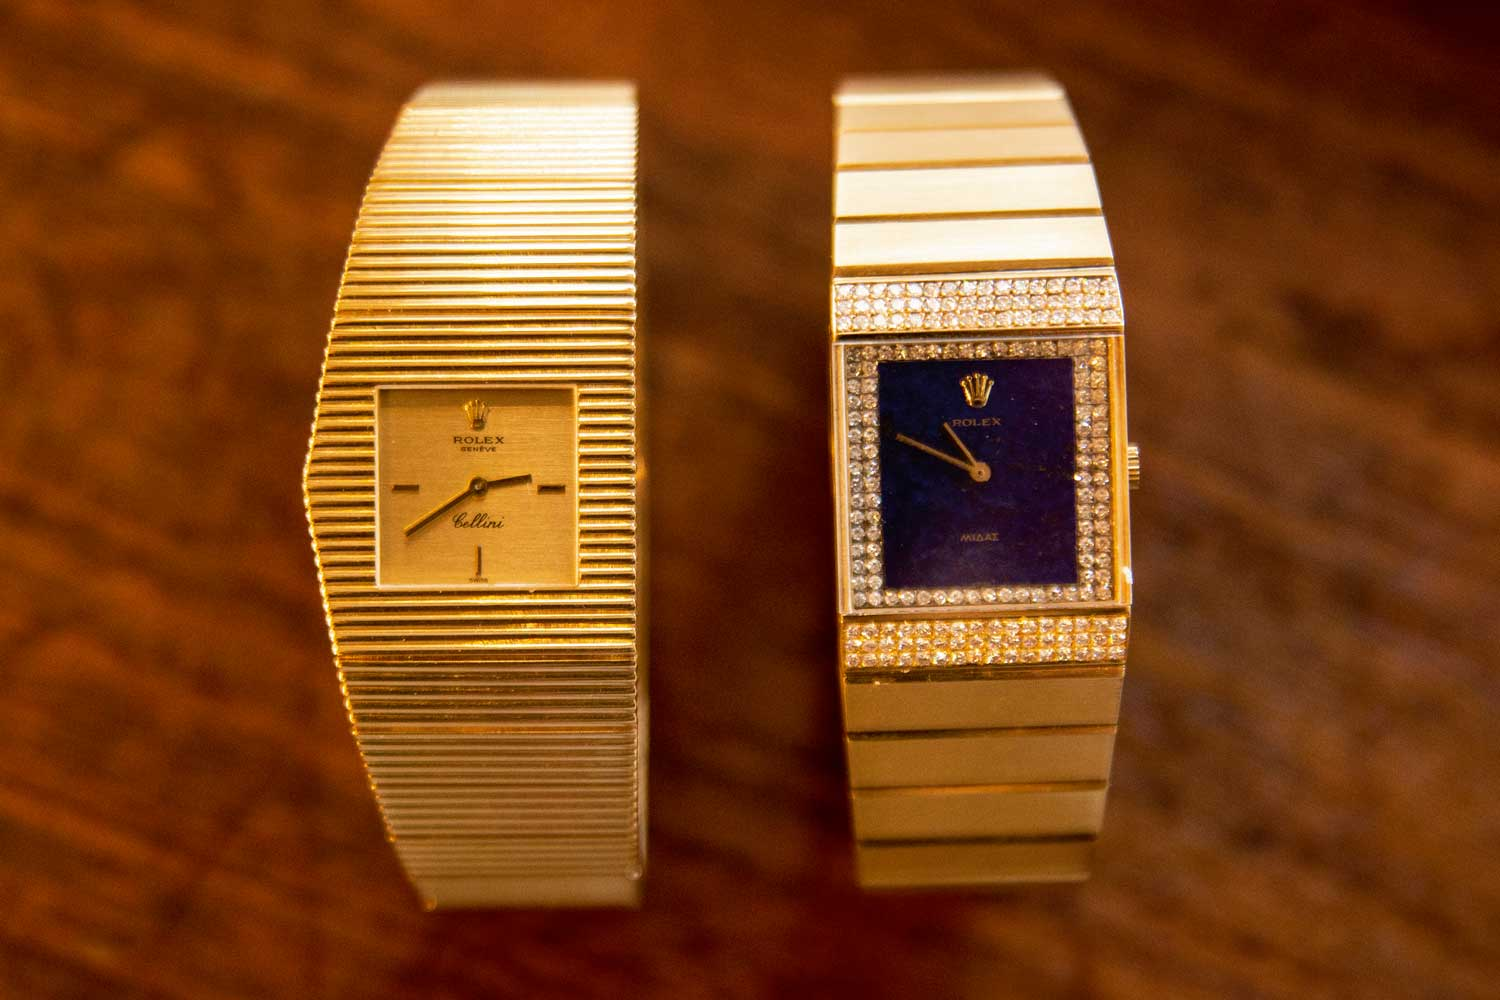 Later versions of the King Midas lost the asymmetrical case design, like the Ref. 4611 (right) in yellow gold with lapis lazuli dial (©Revolution)